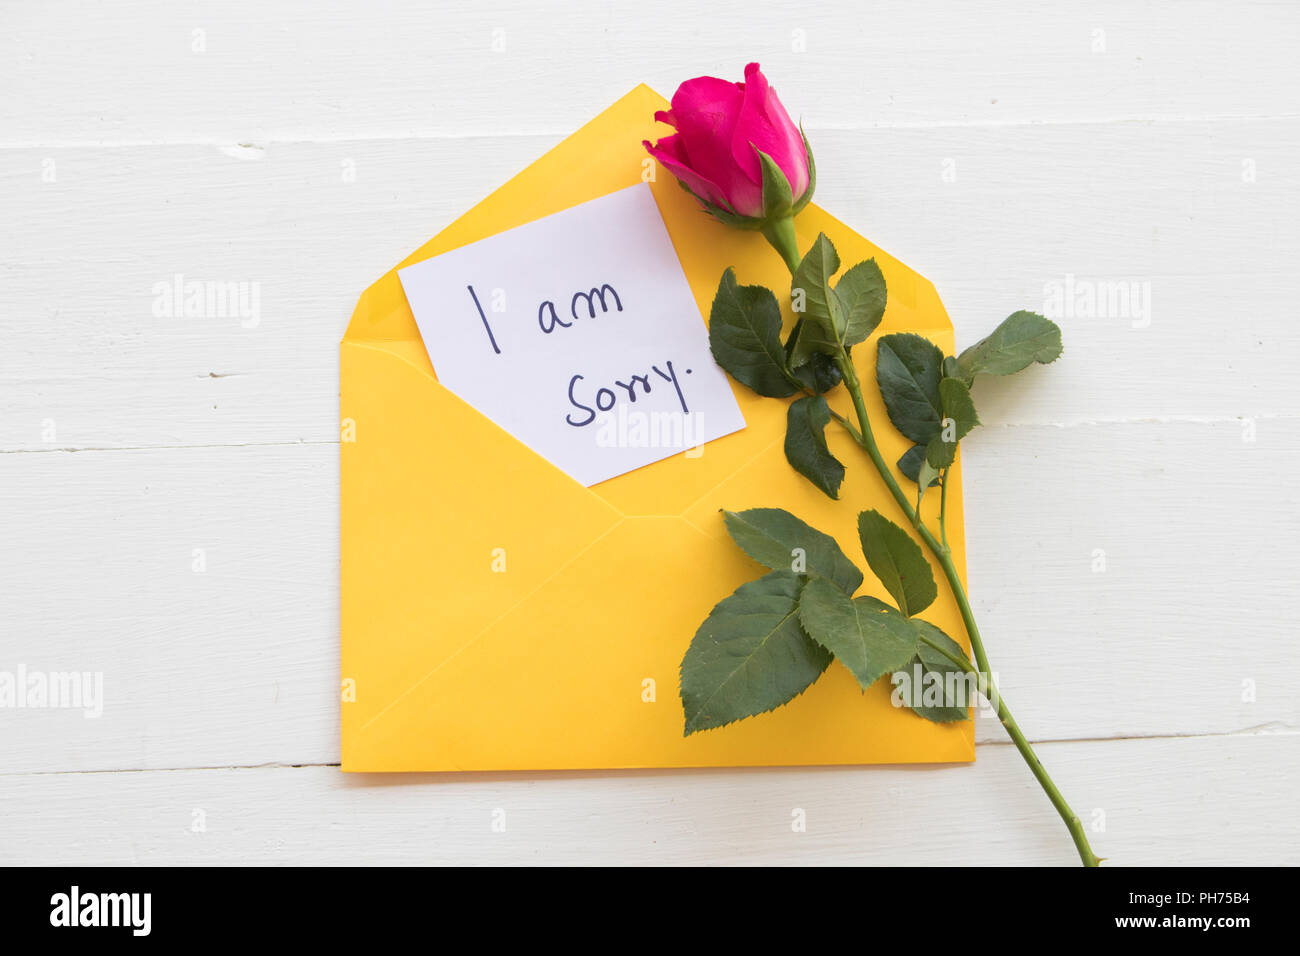 i am sorry message card handwriting in yellow envelope with red rose flower on background white wood